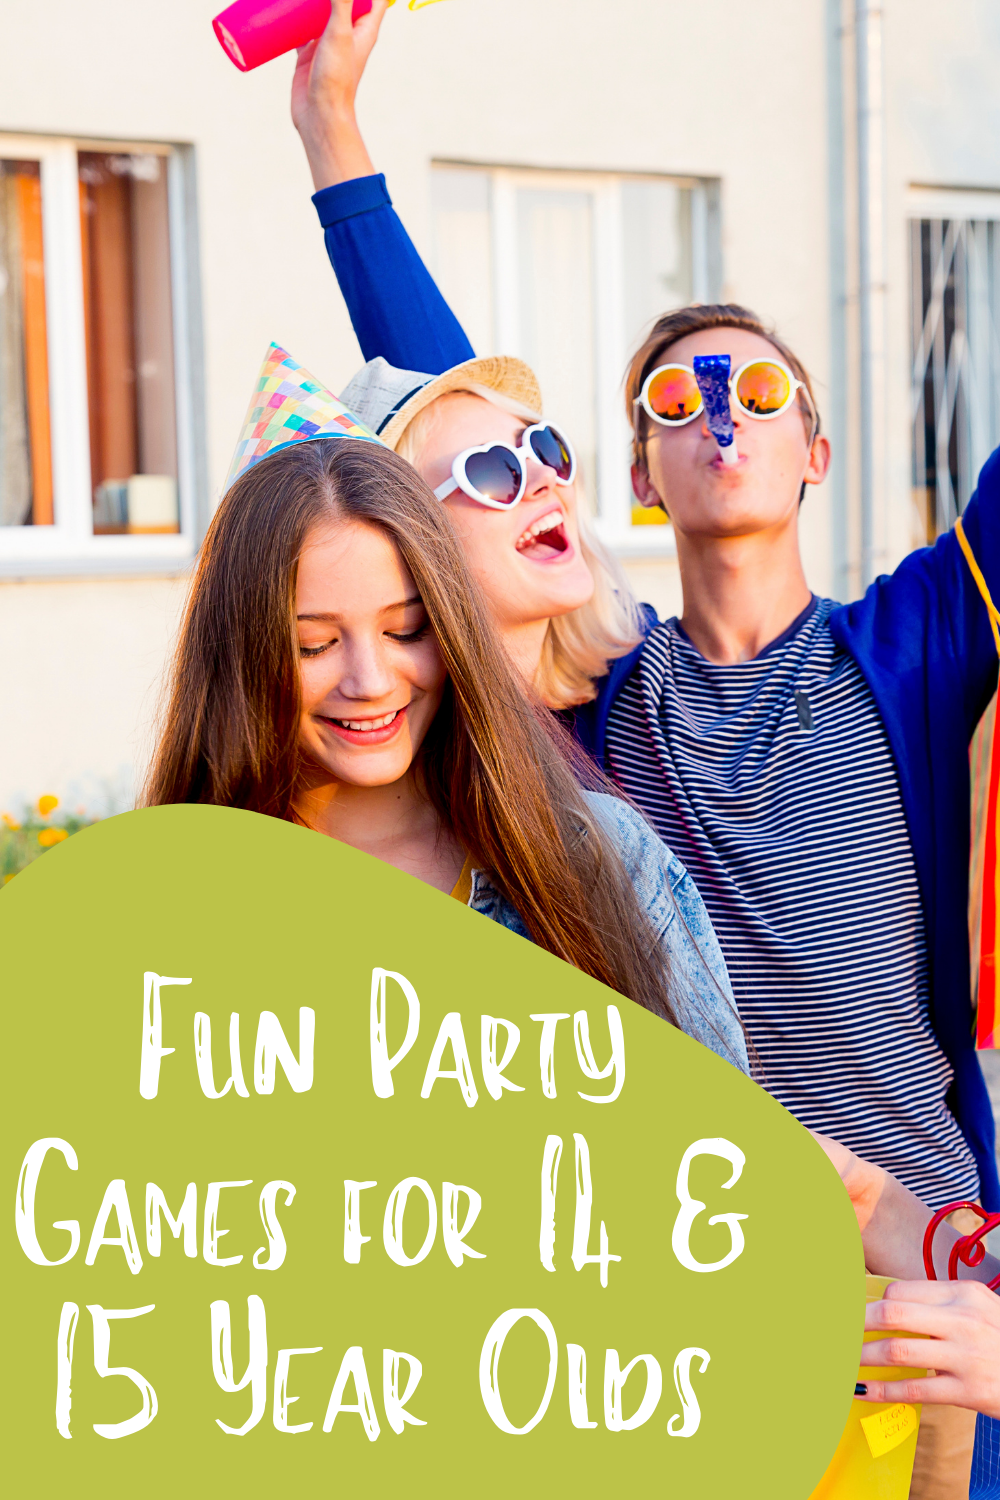 Party Games for 14 & 15 Year Olds